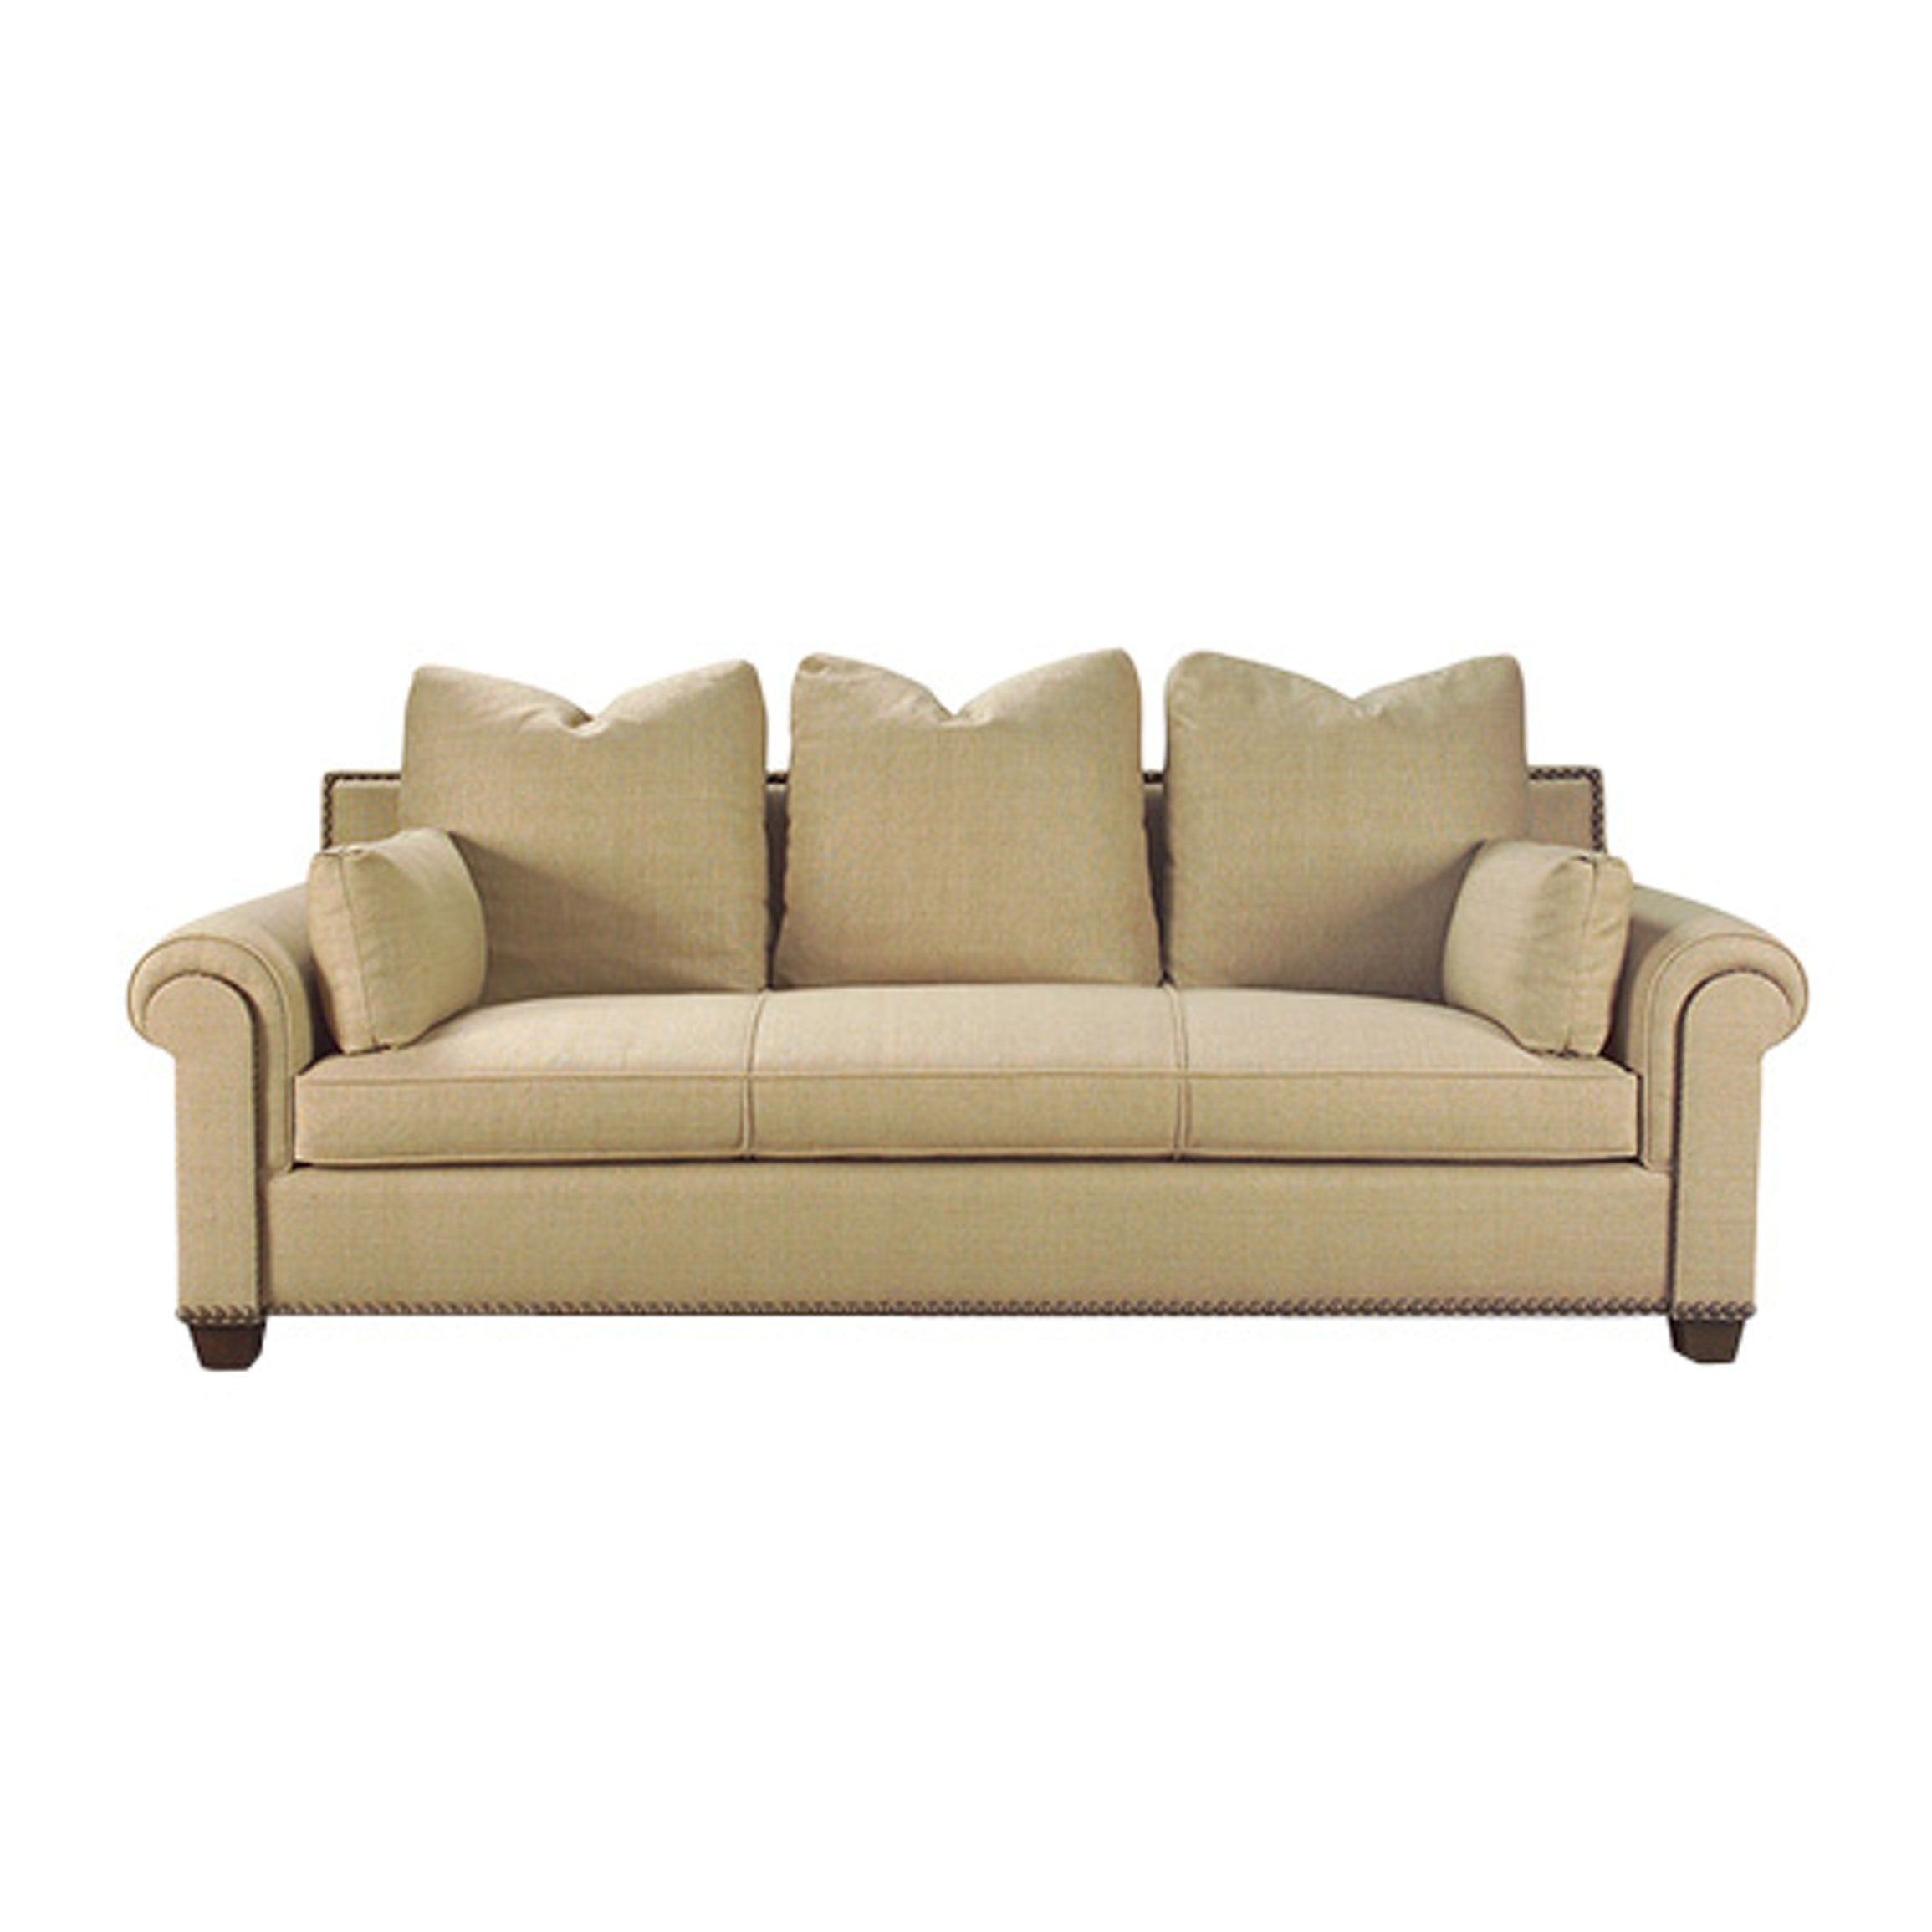 Rue Cambon Sofa Transitional Wood Upholstery Fabric Sofas